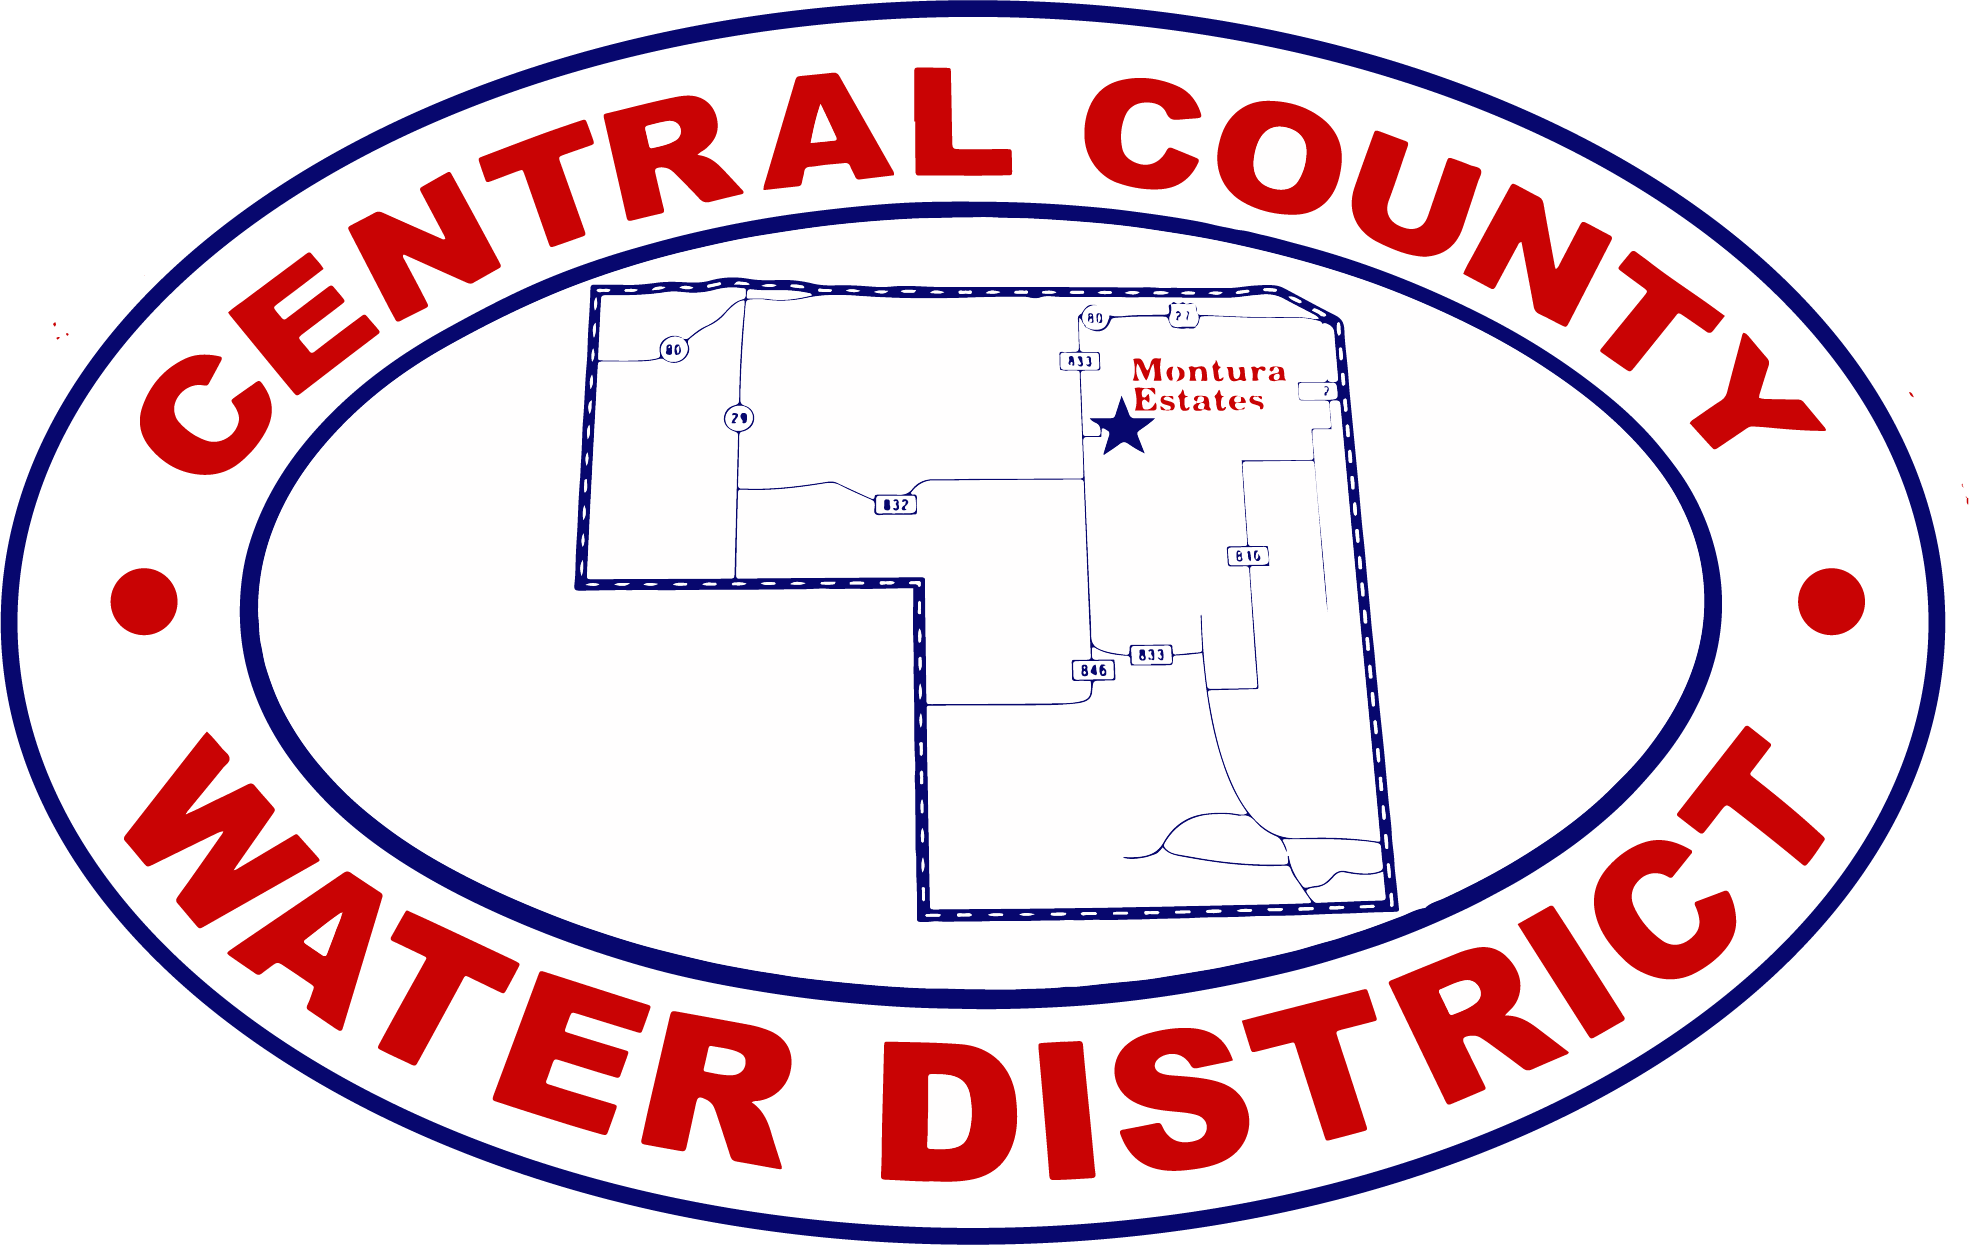 Central County Water Control District